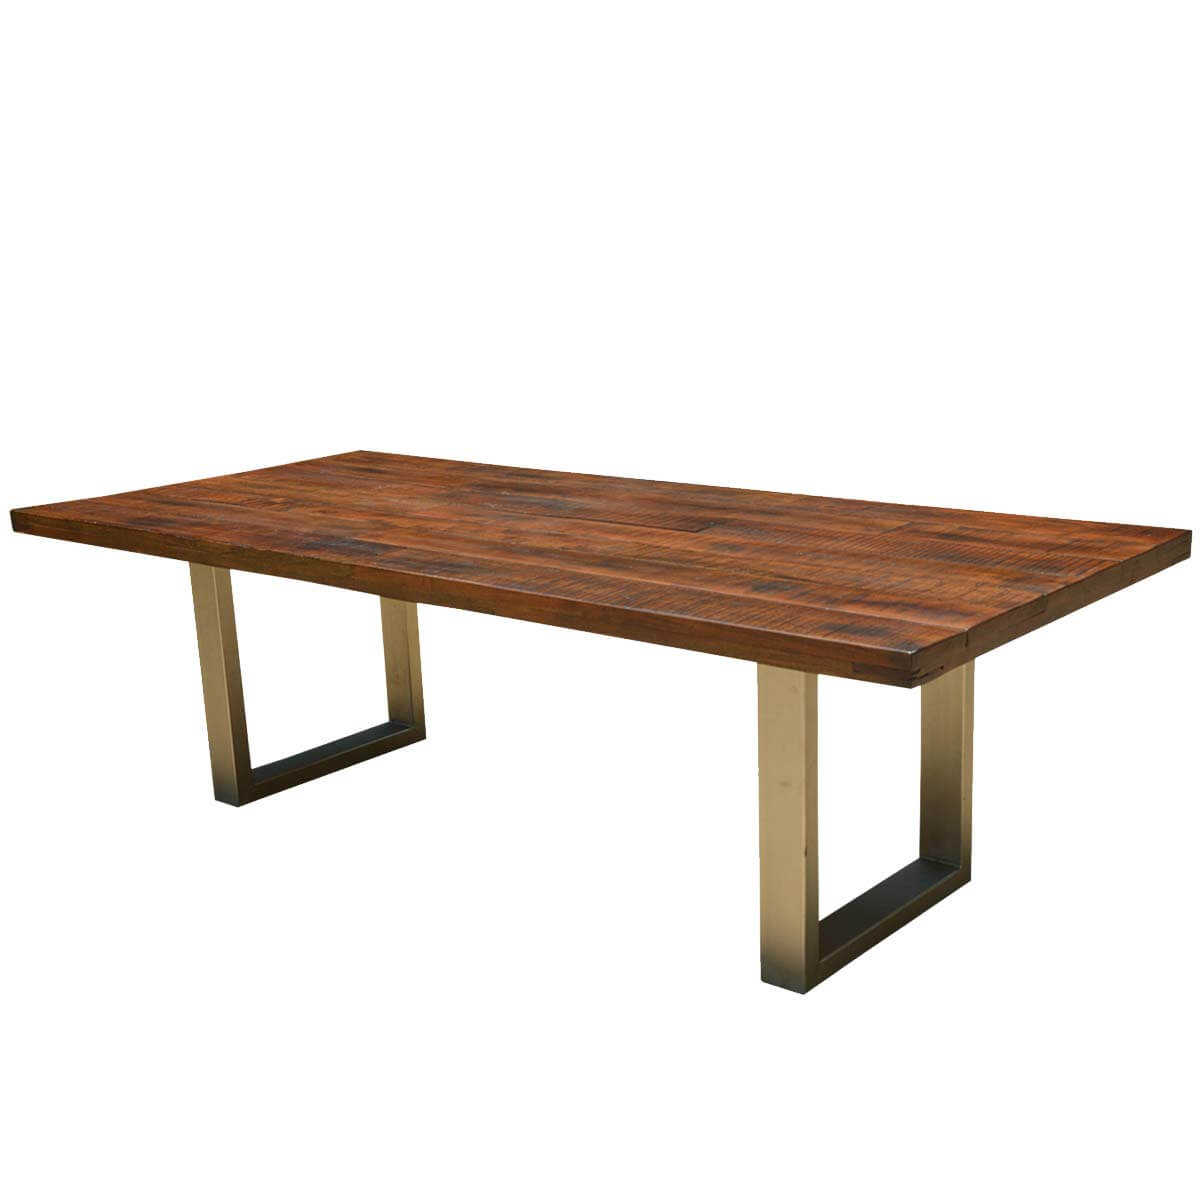 Acacia lyon large contemporary rustic solid acacia wood for Big modern dining table